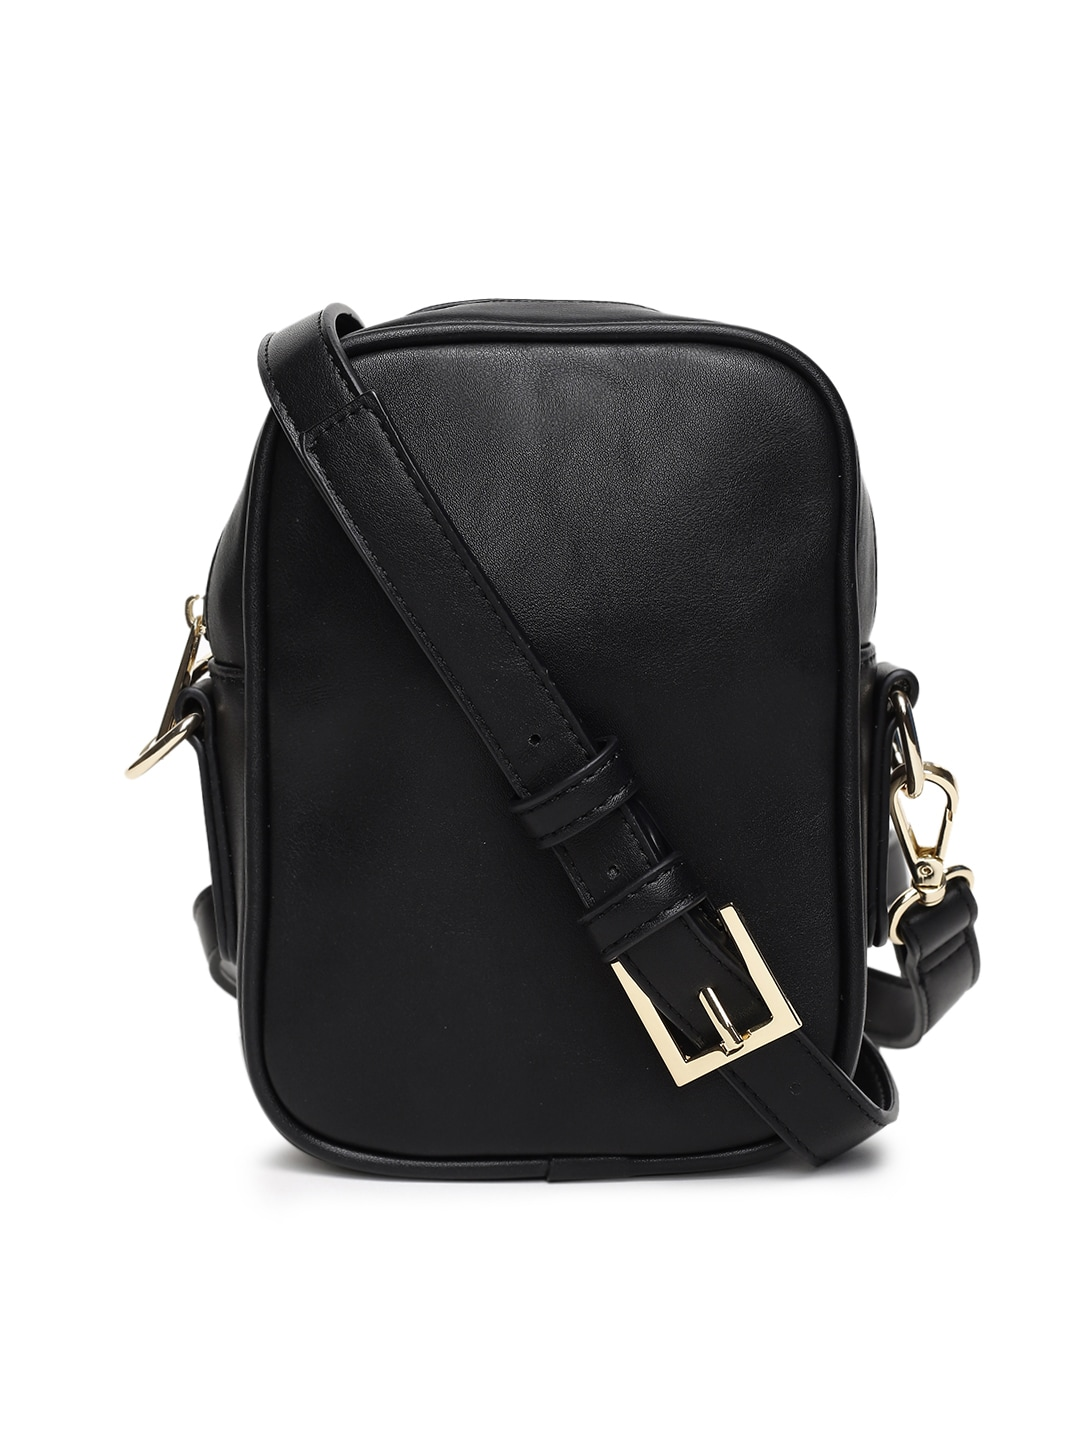 8eee7a018b92 Forever 21 Bags - Buy Forever 21 Bags online in India